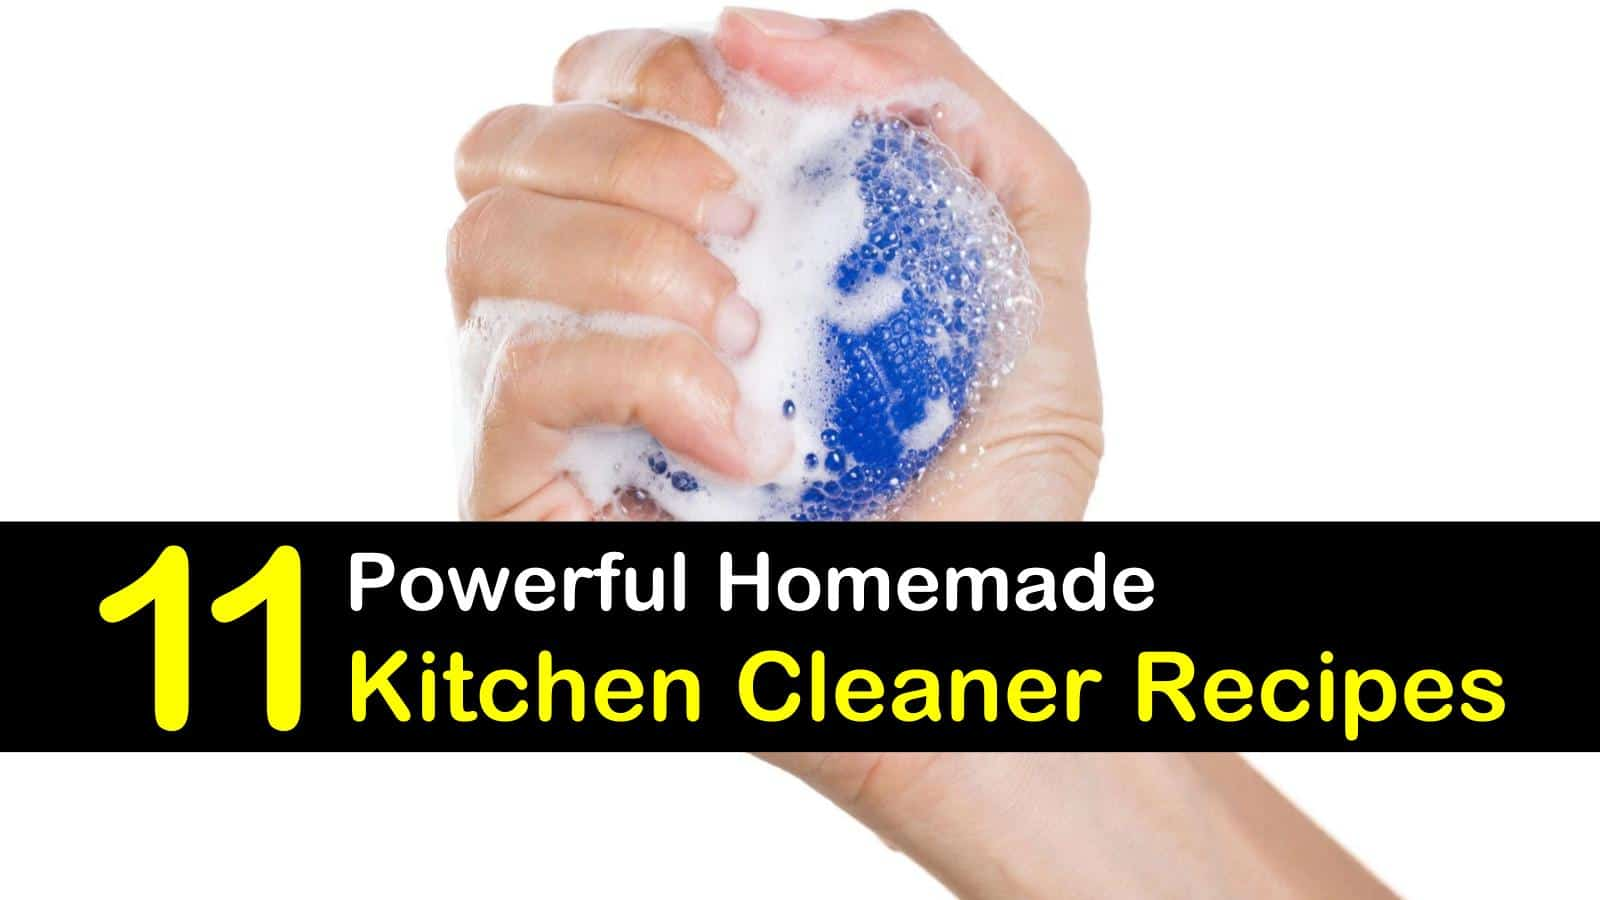 homemade kitchen cleaner titleimg1